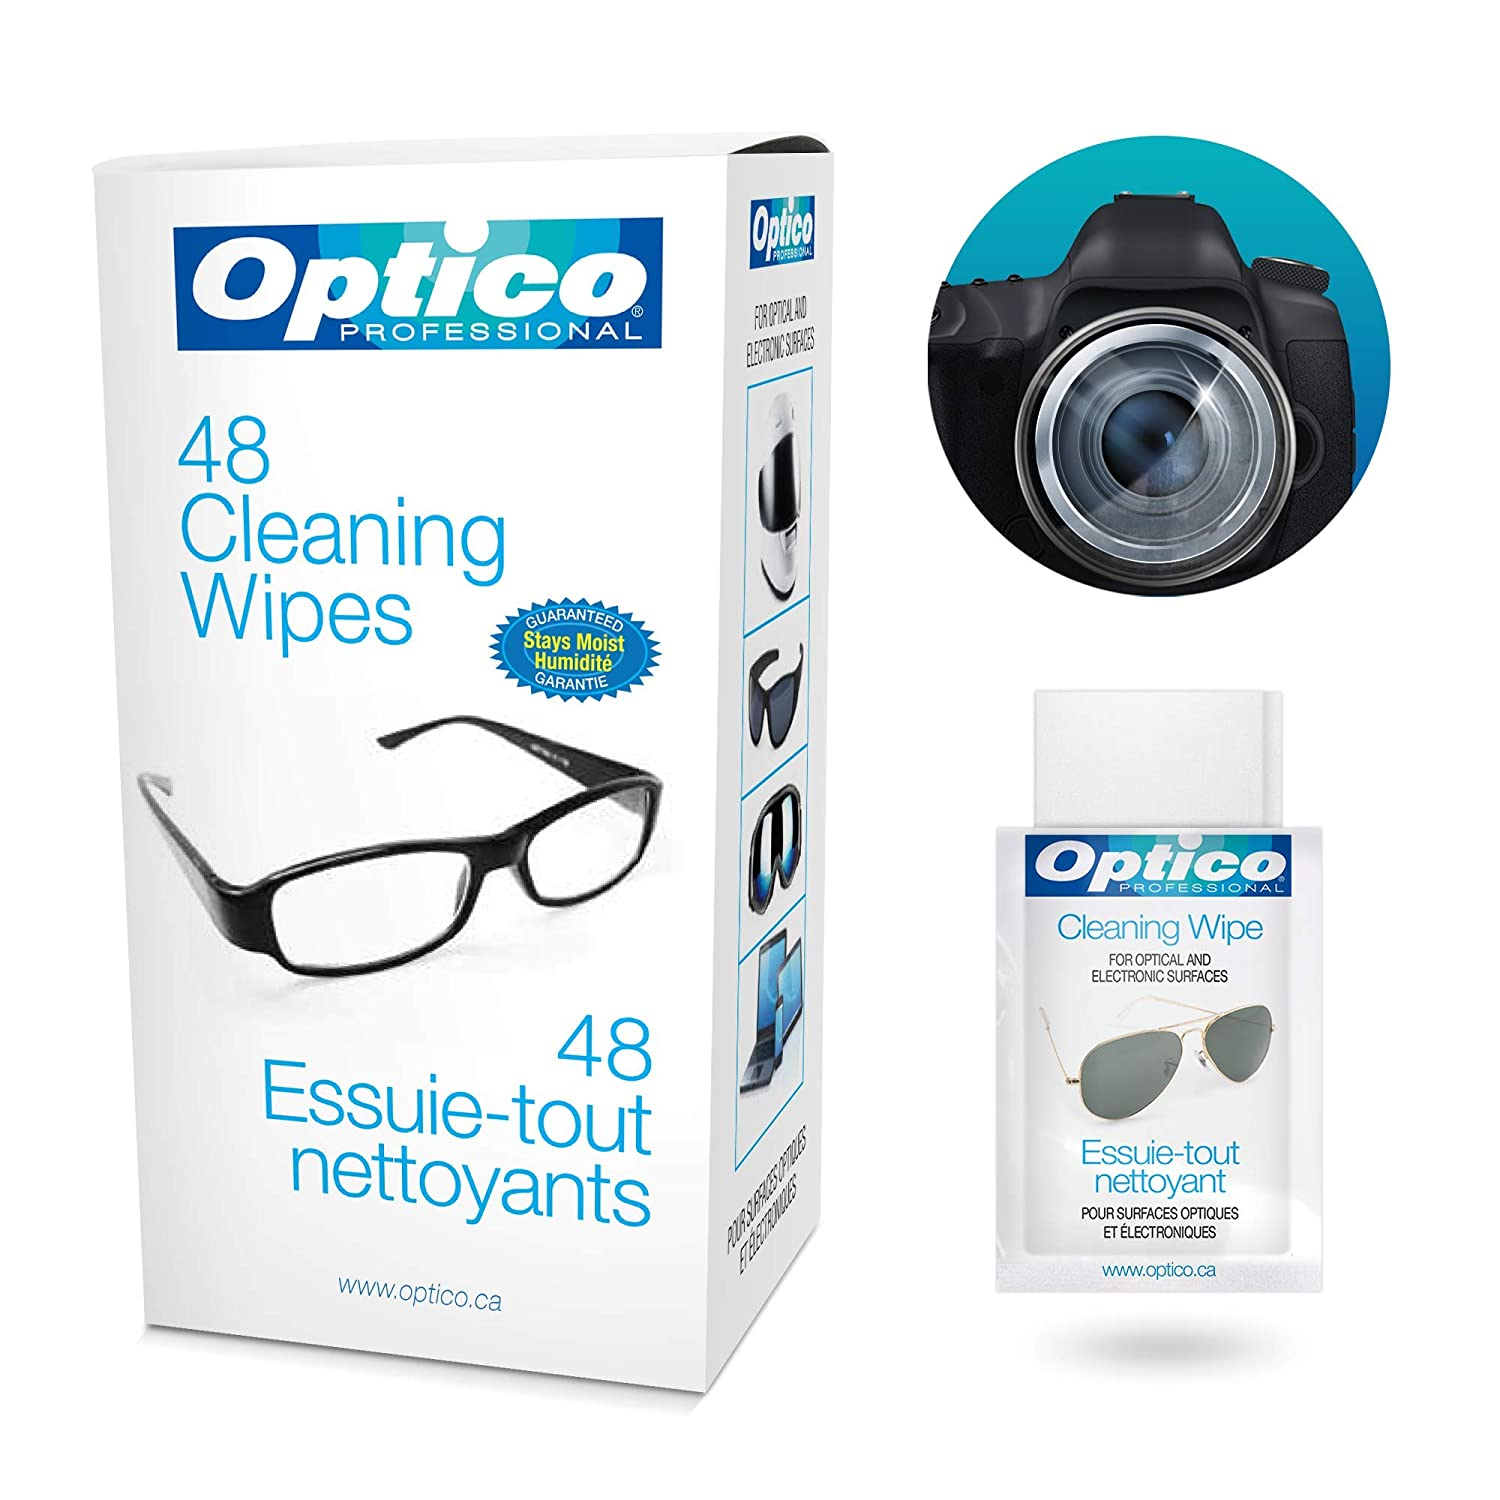 Optico Professional Pre-Moistened Optical Cleaning wipes ( each wipe 9cm x  13cm - 1 ml fill ) Gently Clean Glasses, Lenses, Sunglasses, Reading